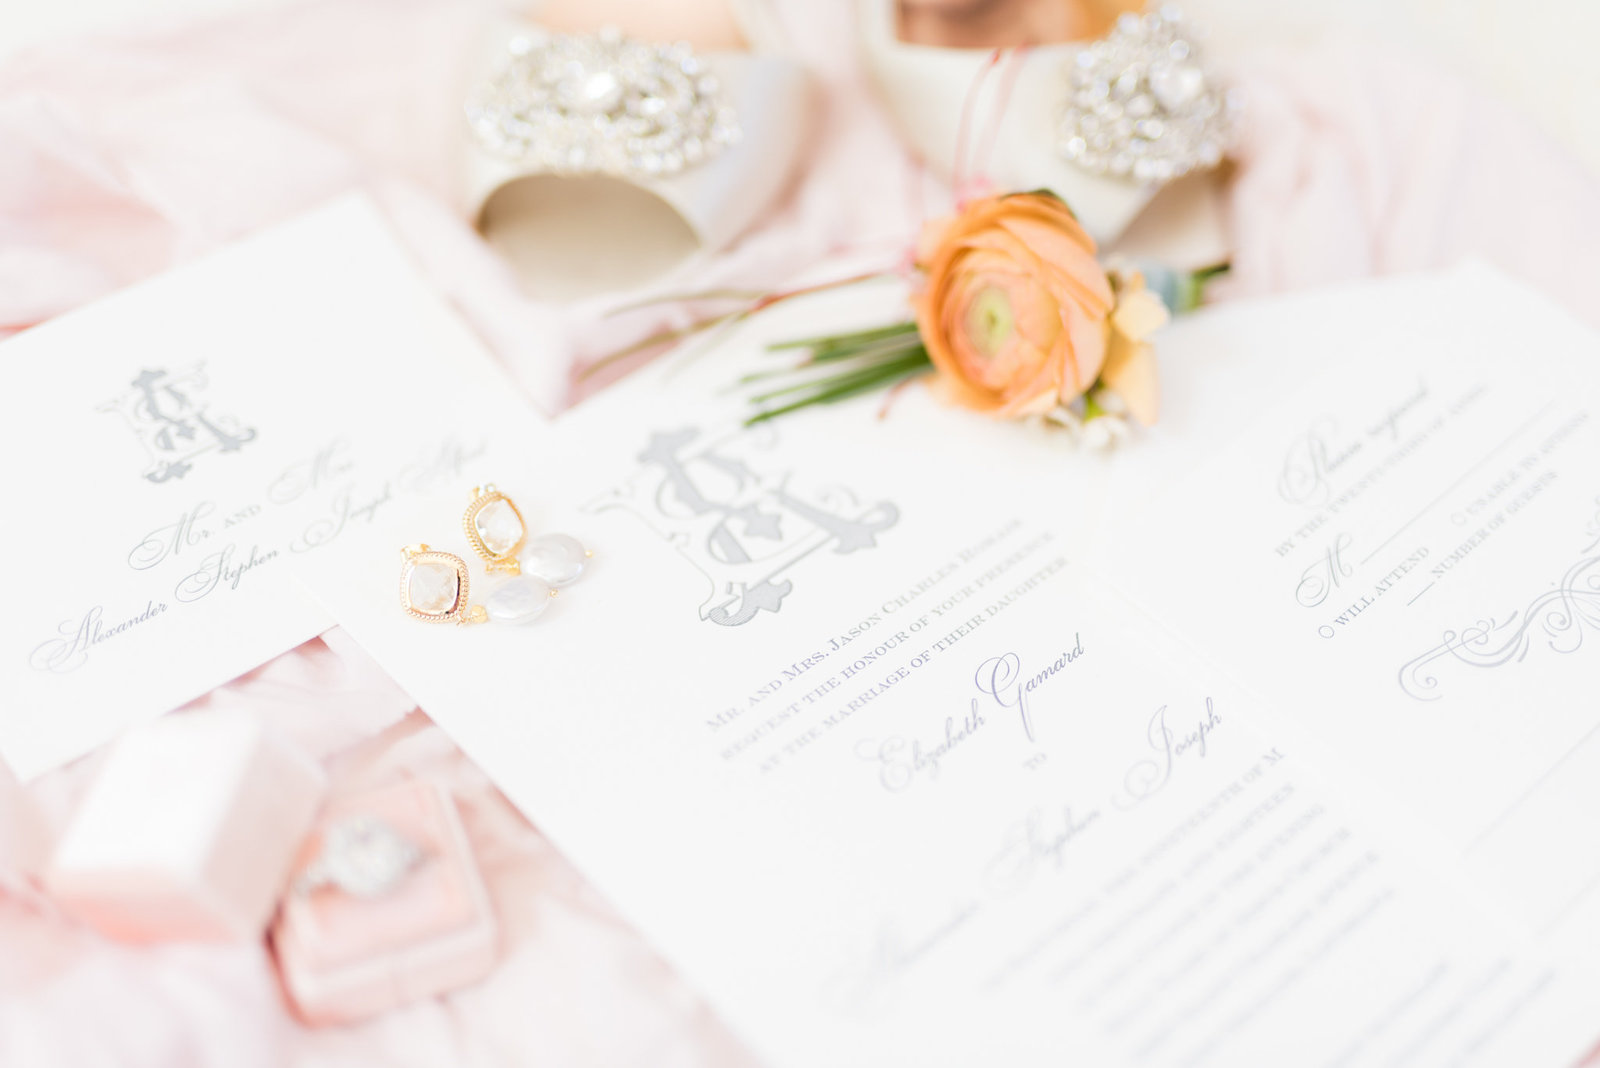 Earrings sit on Blush and White Invitation Suite.